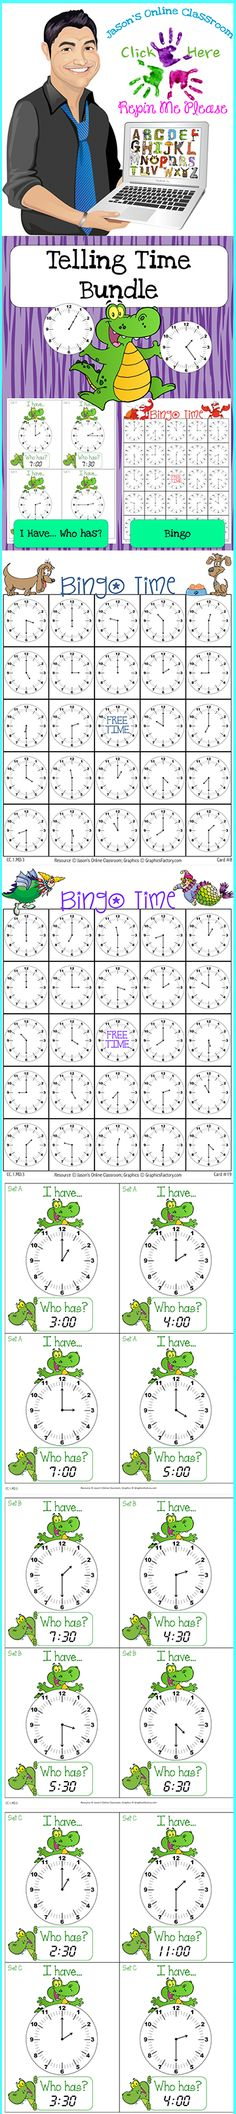 $7 Bundle contains our Telling Time Bingo and I Have Who Has Games bundled together at a lower price than purchasing individually.  Perfect for 1st grade! Click on the link below for more info about the images used to make this resource (Images © Graphics Factory) http://jasonsonlineclassroom.com./graphics-factory/